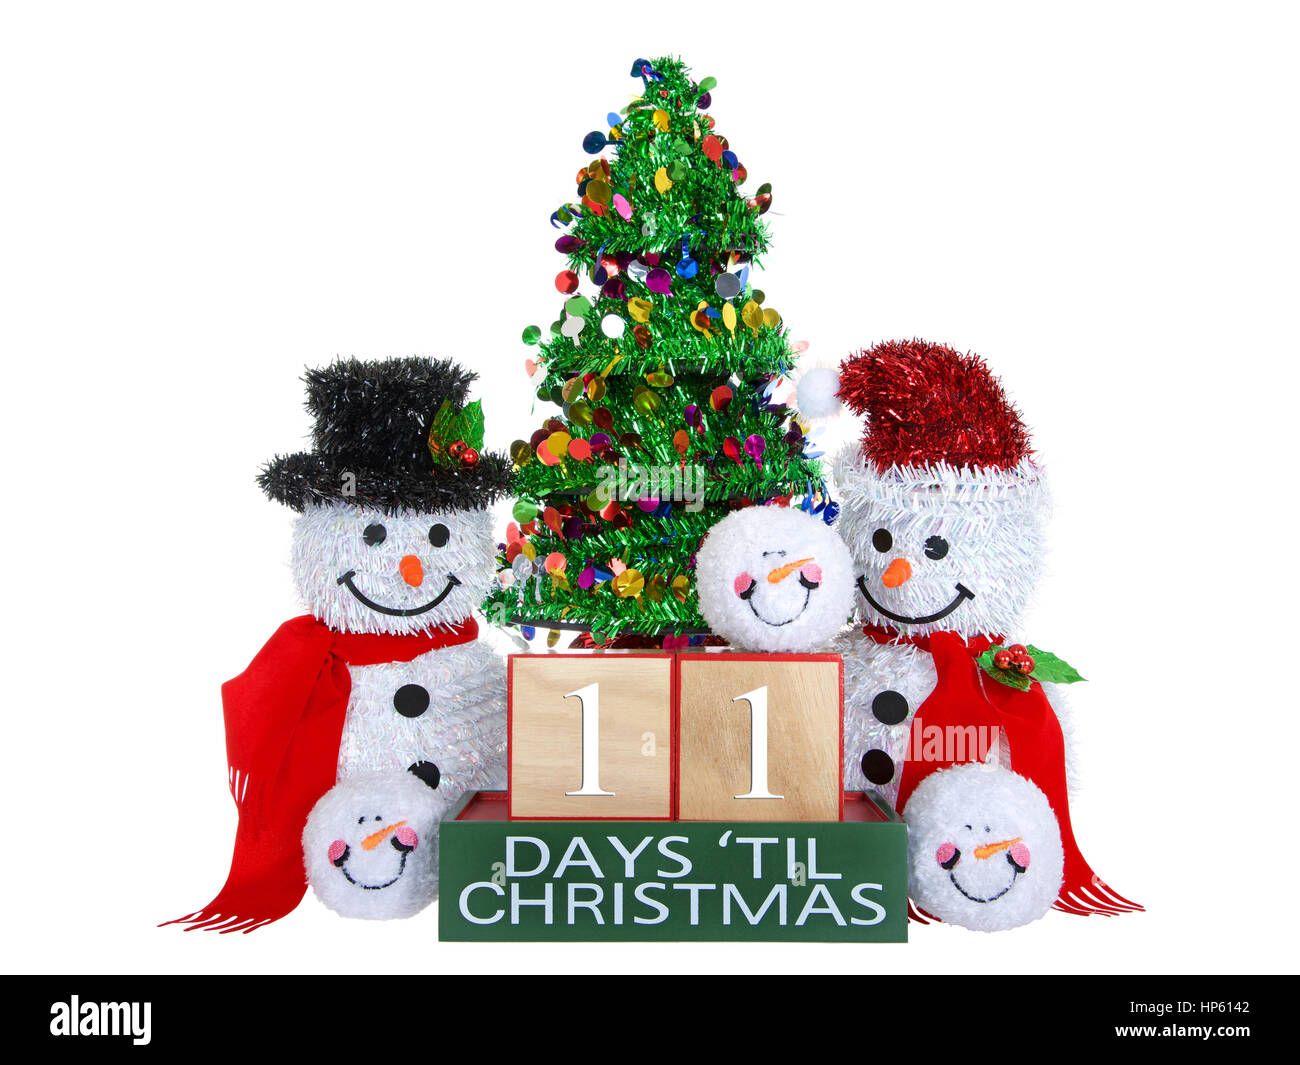 How Many Days Until Christmas Eve.11 Days Until Christmas Light Beech Wood Blocks With Red